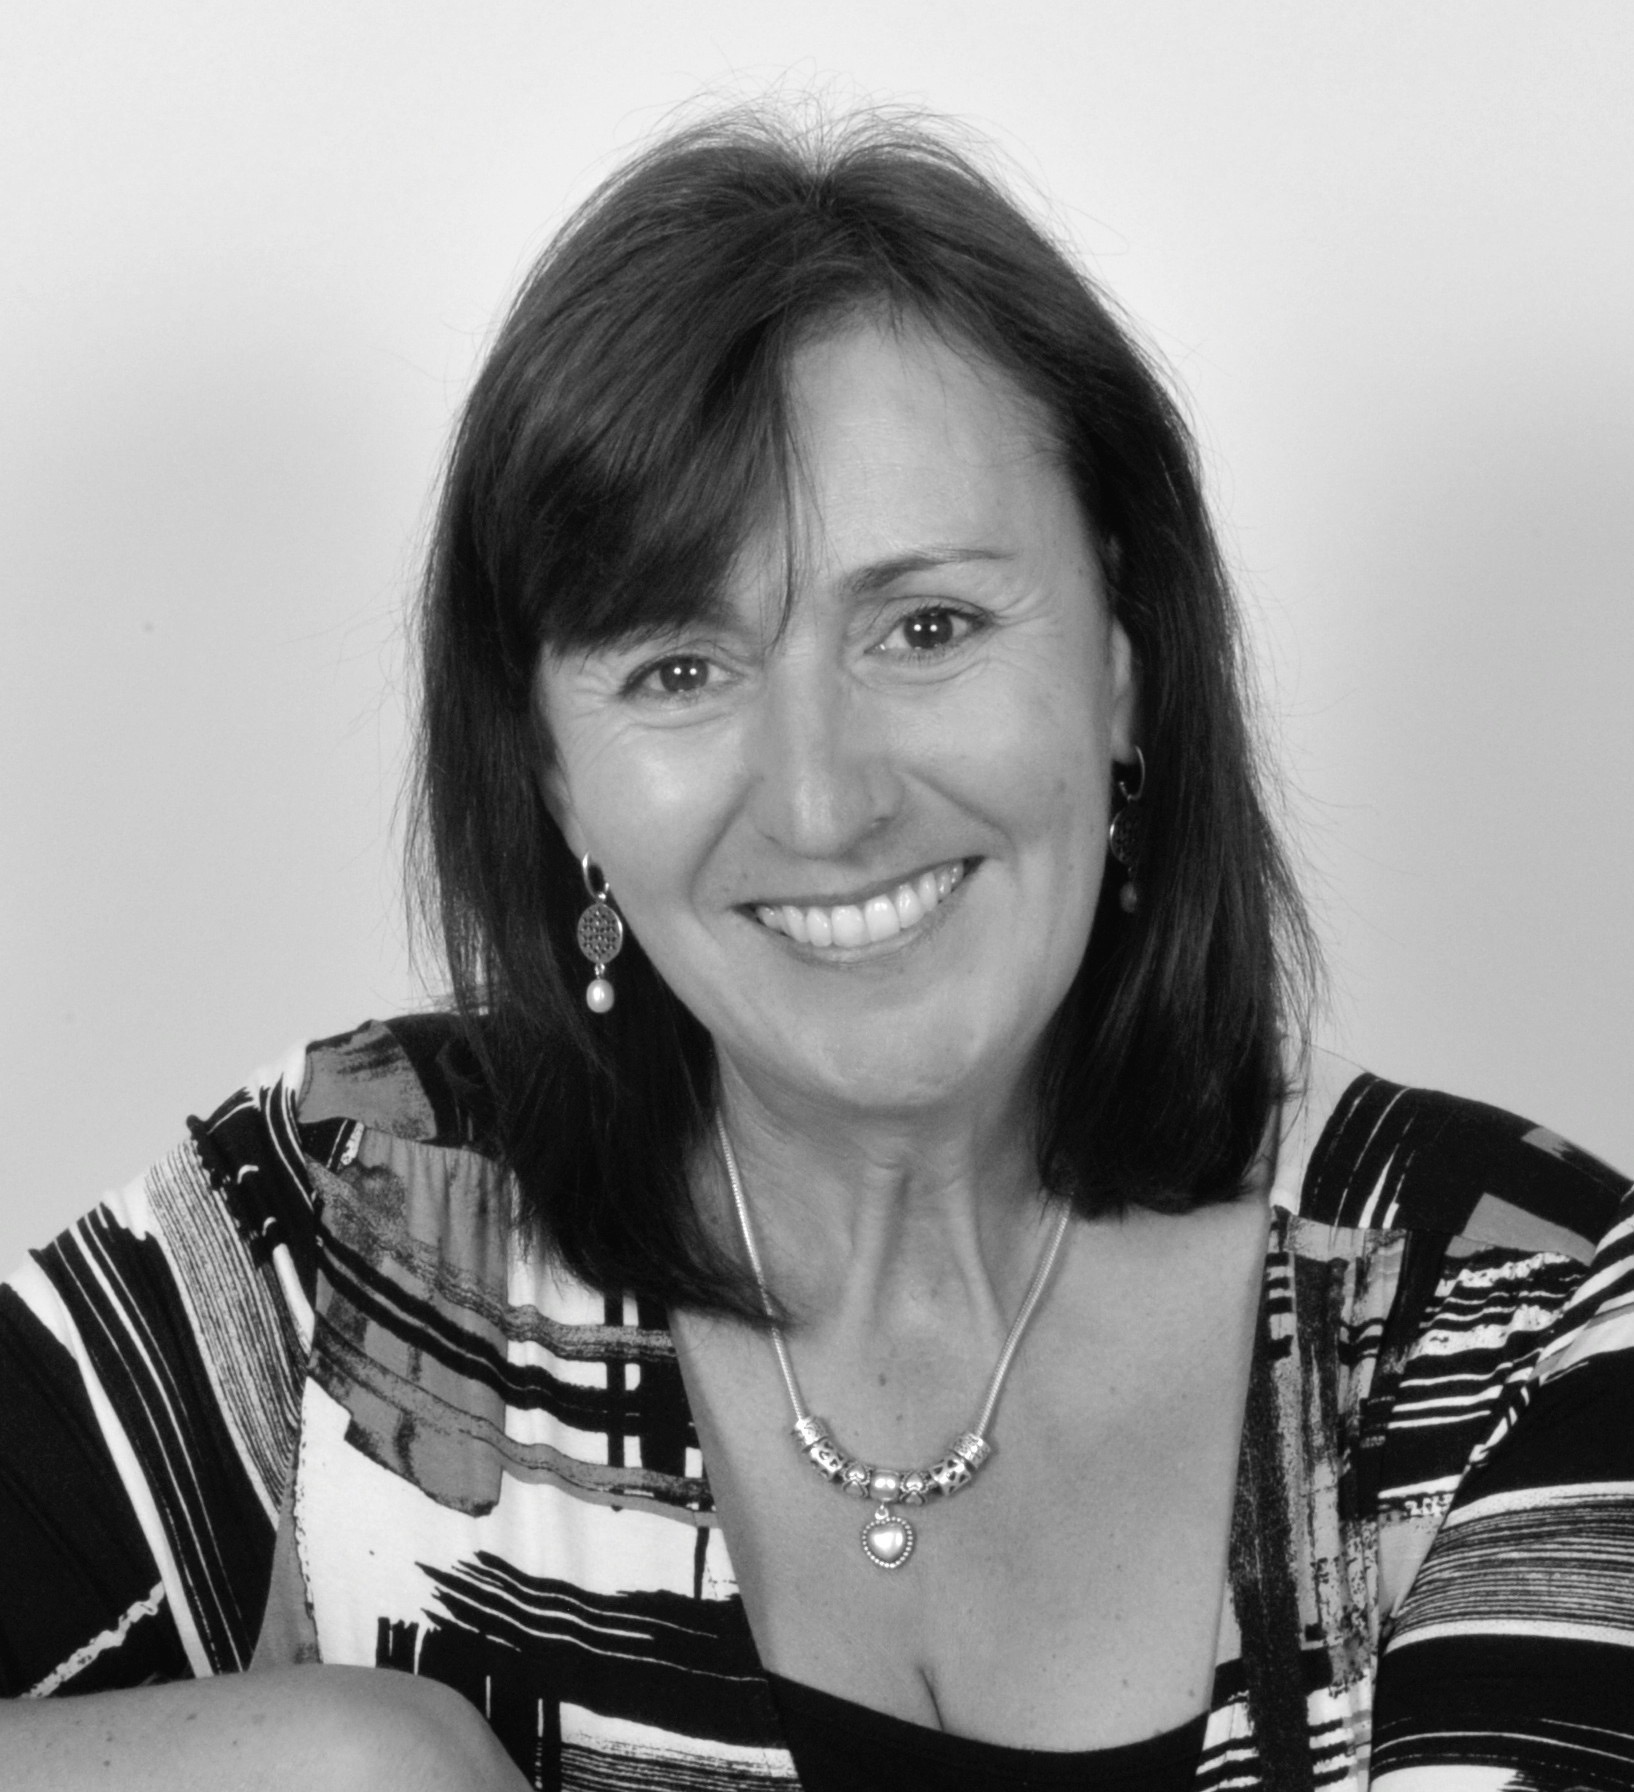 """Sharon Golightly - Treasuer   Sharon has a background in Human Resources and works with both commercial and not for profit organisations. In addition to her professional experience she also has a real heart for charity work, particularly in providing crisis help to those in need, where she is a Chair of Trustees for the Easter Team. She says """"as someone who has been personally affected by cancer it is an honour to be part of a charity that will support families like the Lays in times when they most need it, by allowing them to share special times together."""""""